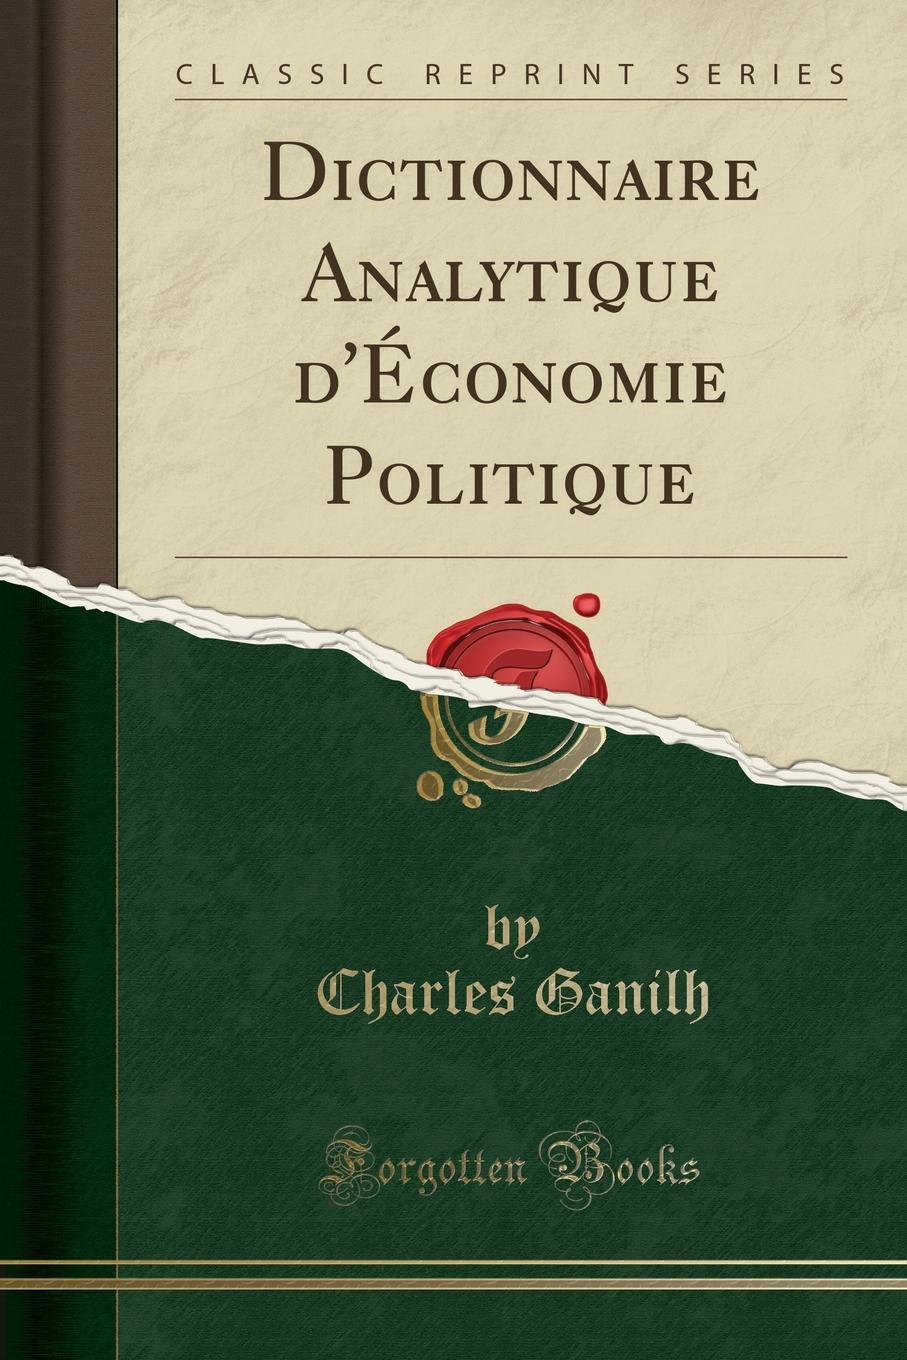 Dictionnaire Analytique d.Economie Politique (Classic Reprint) Excerpt from Dictionnaire Analytique d'Р?conomie PolitiqueCe...